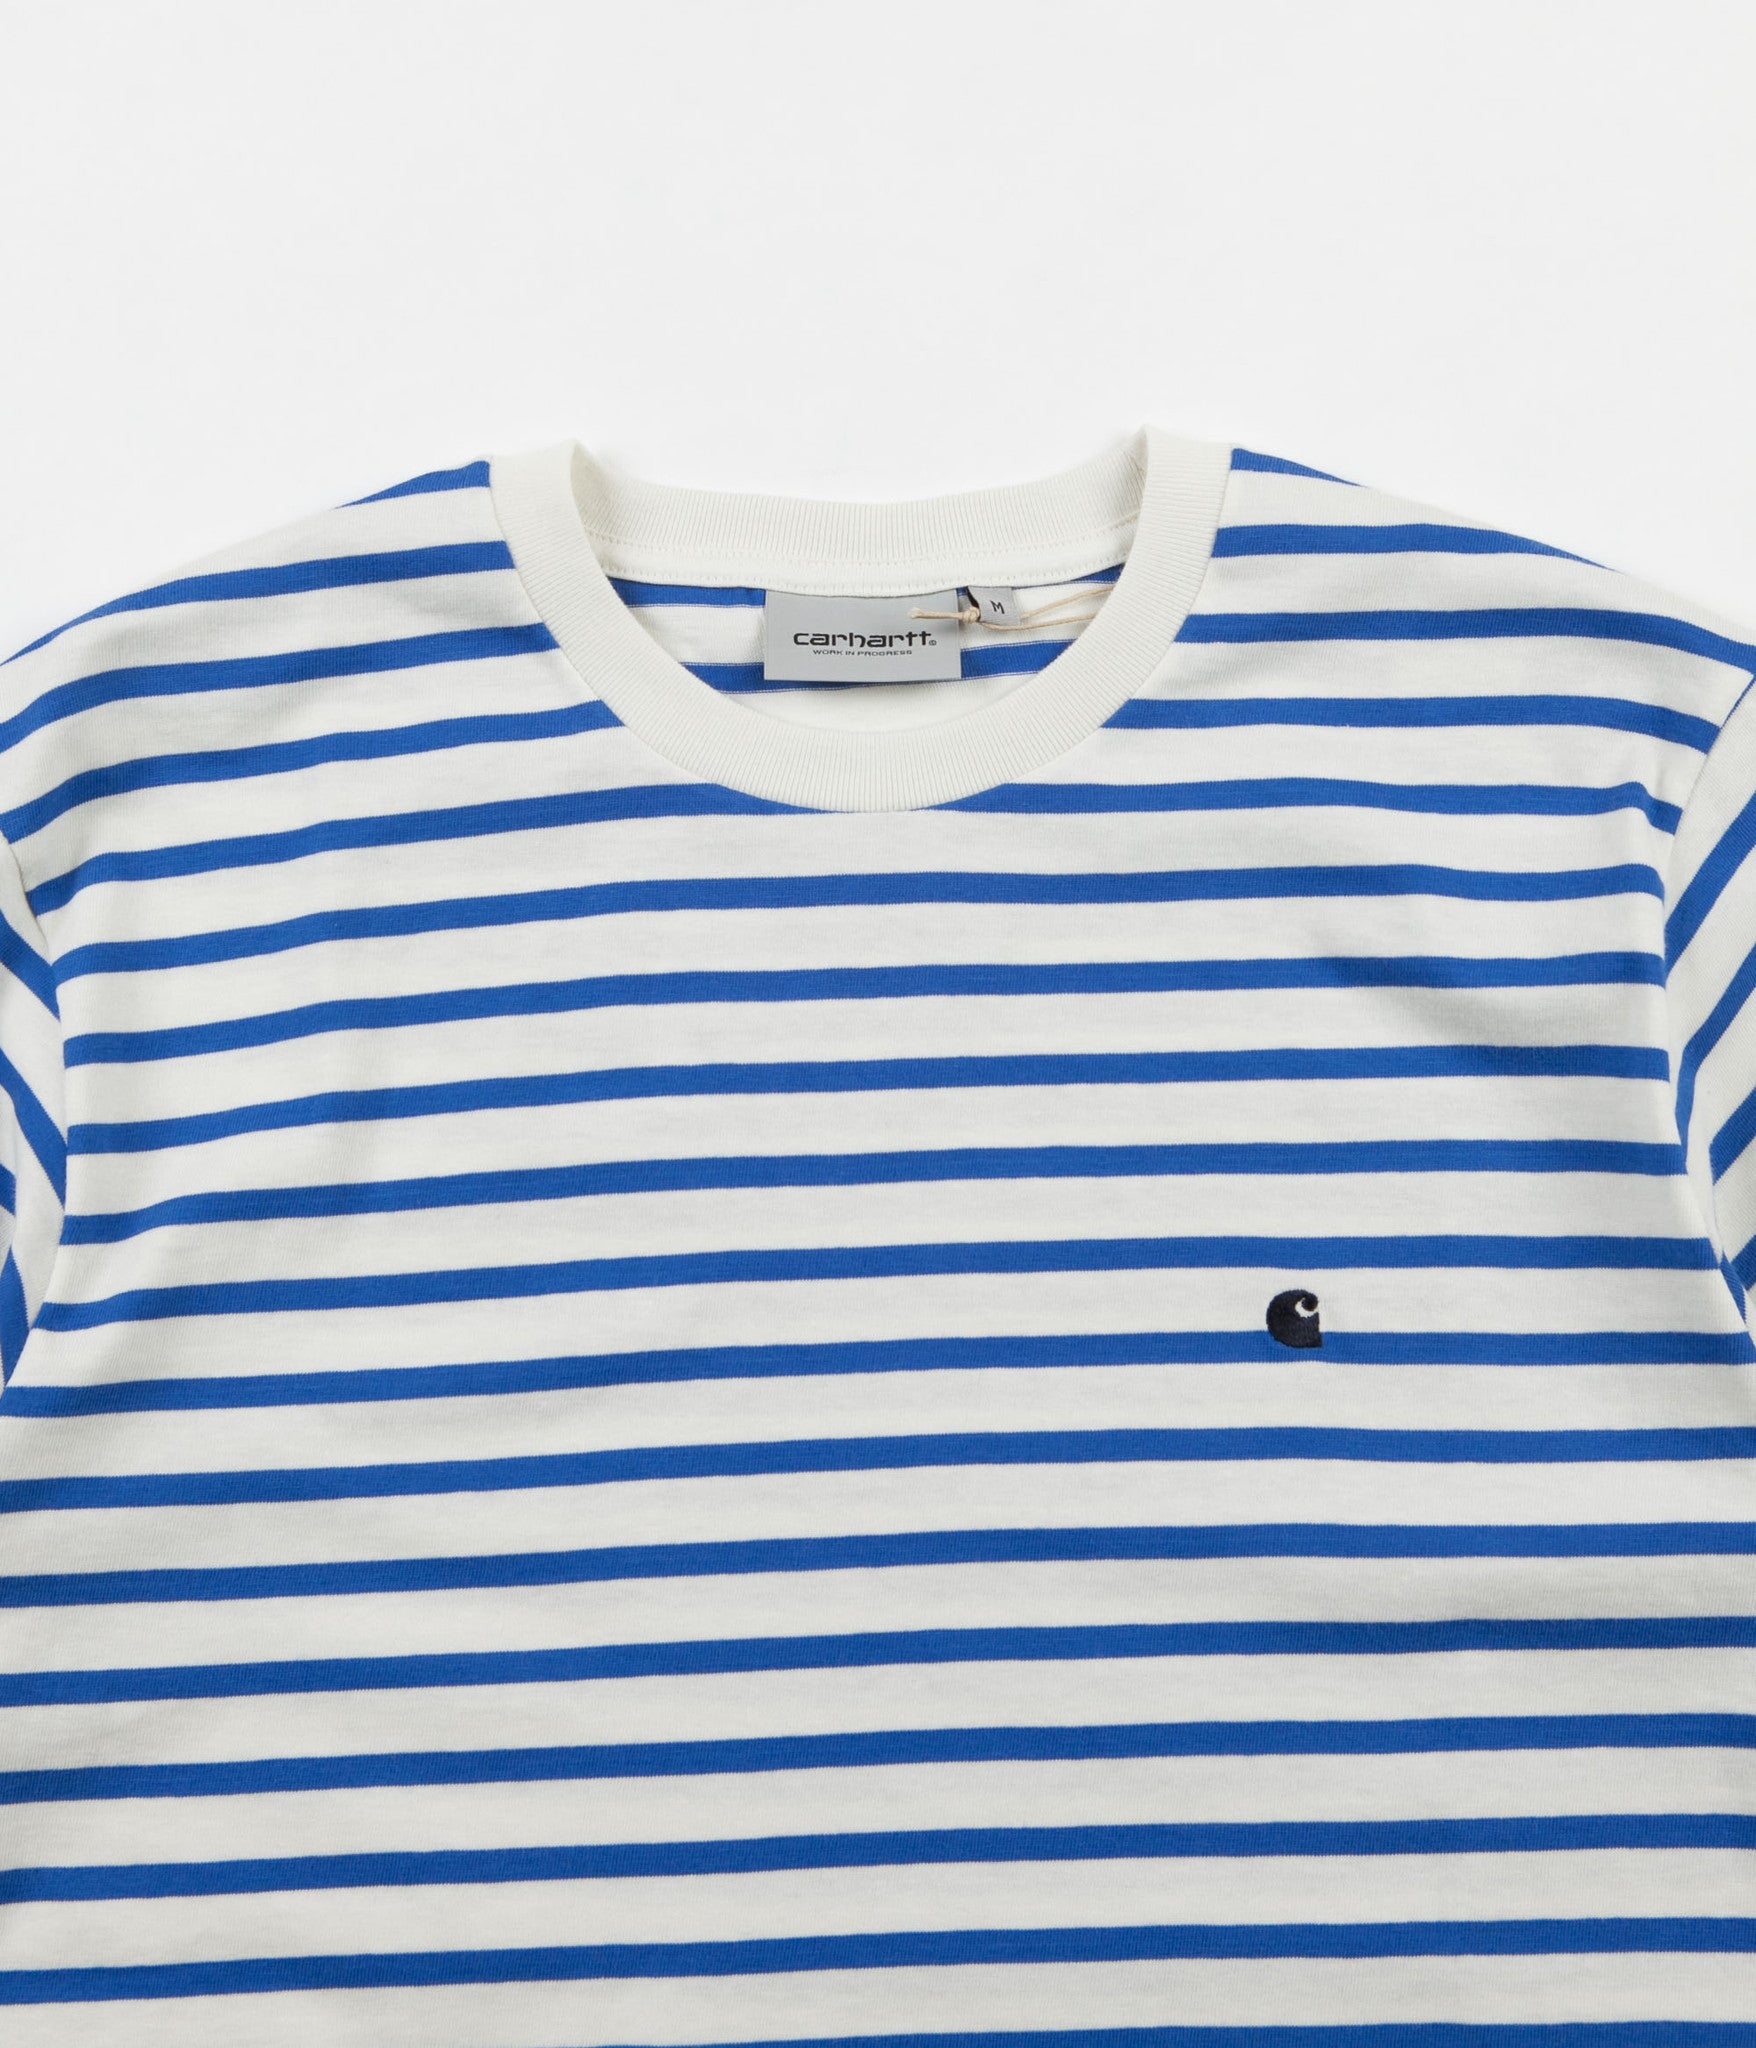 Carhartt Champ T-Shirt - Yale Blue / Wax